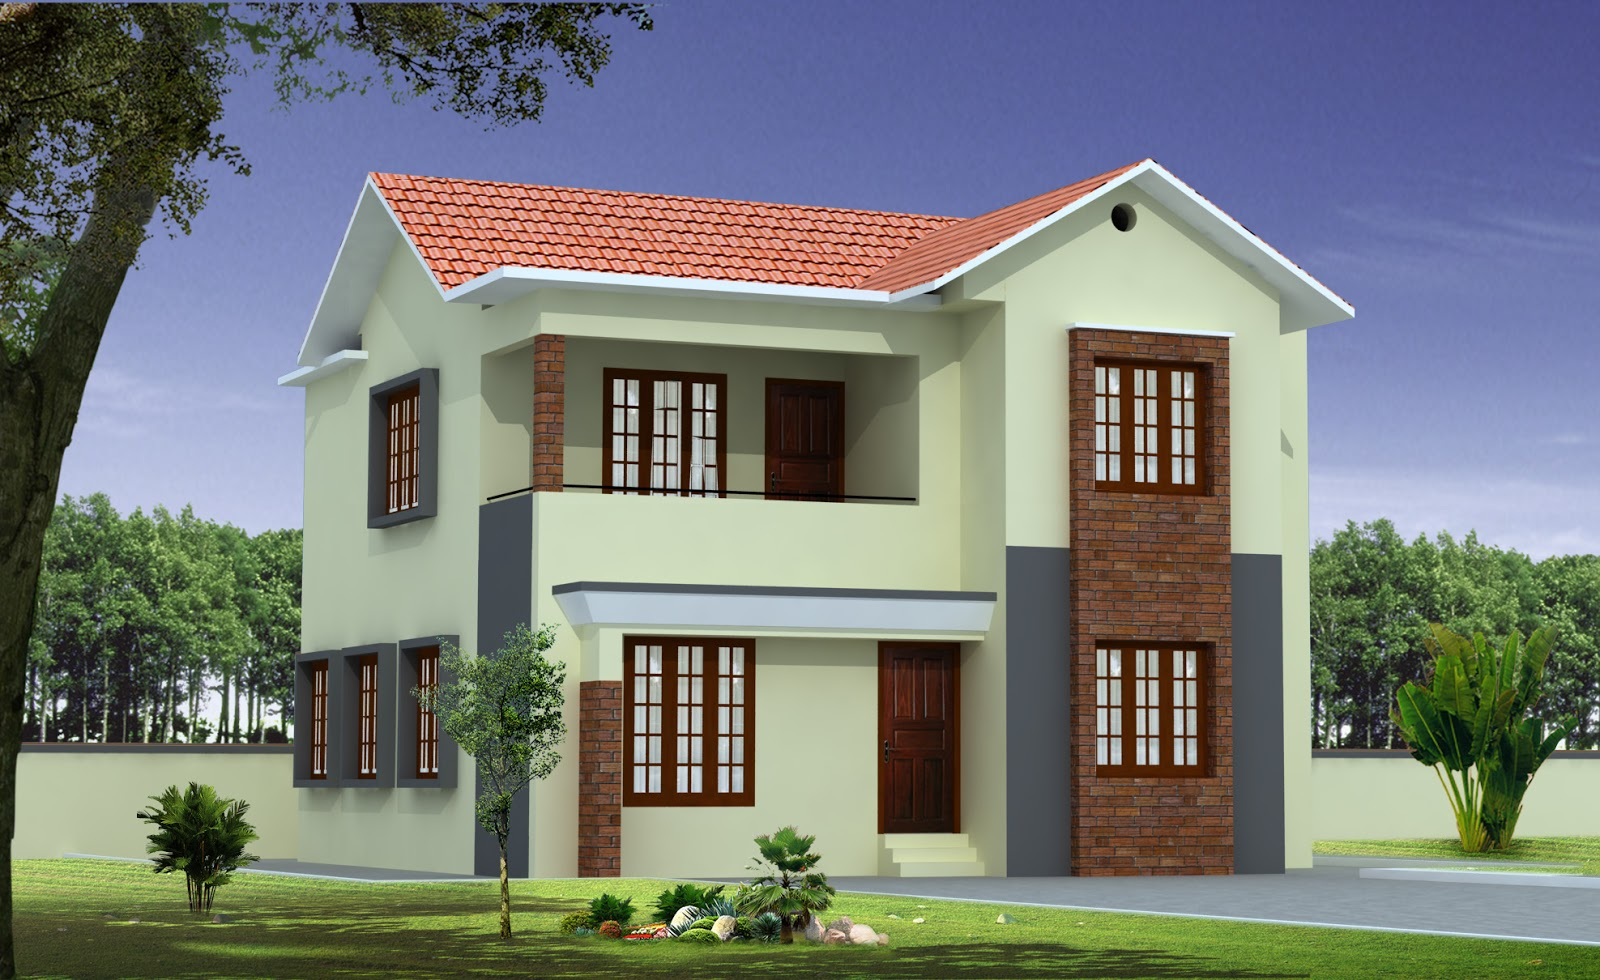 Build a building latest home designs Build your home